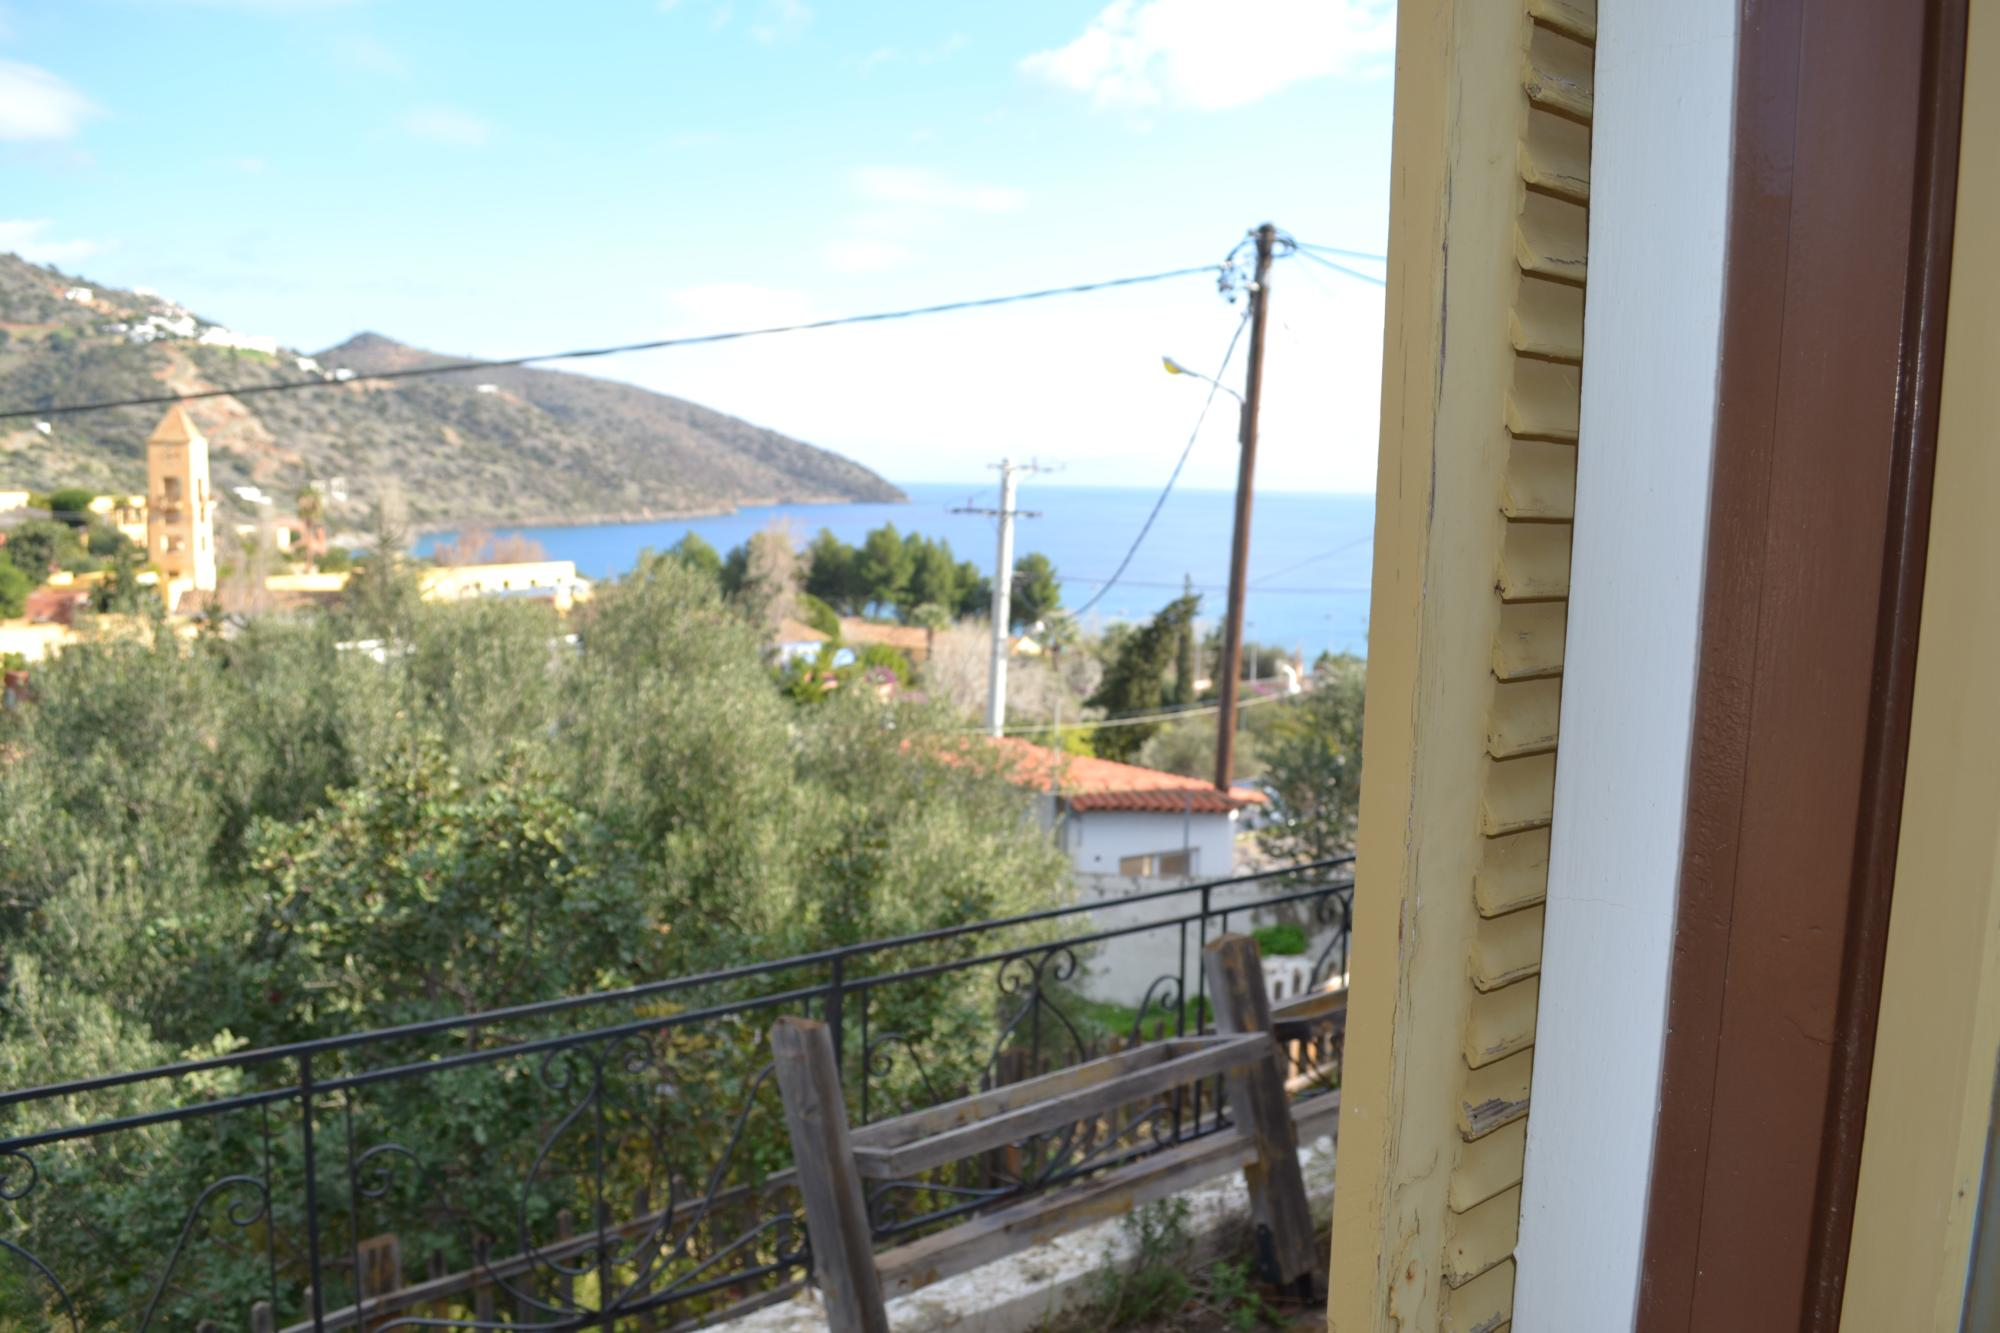 Small hotel with sea views, close to beach and town.